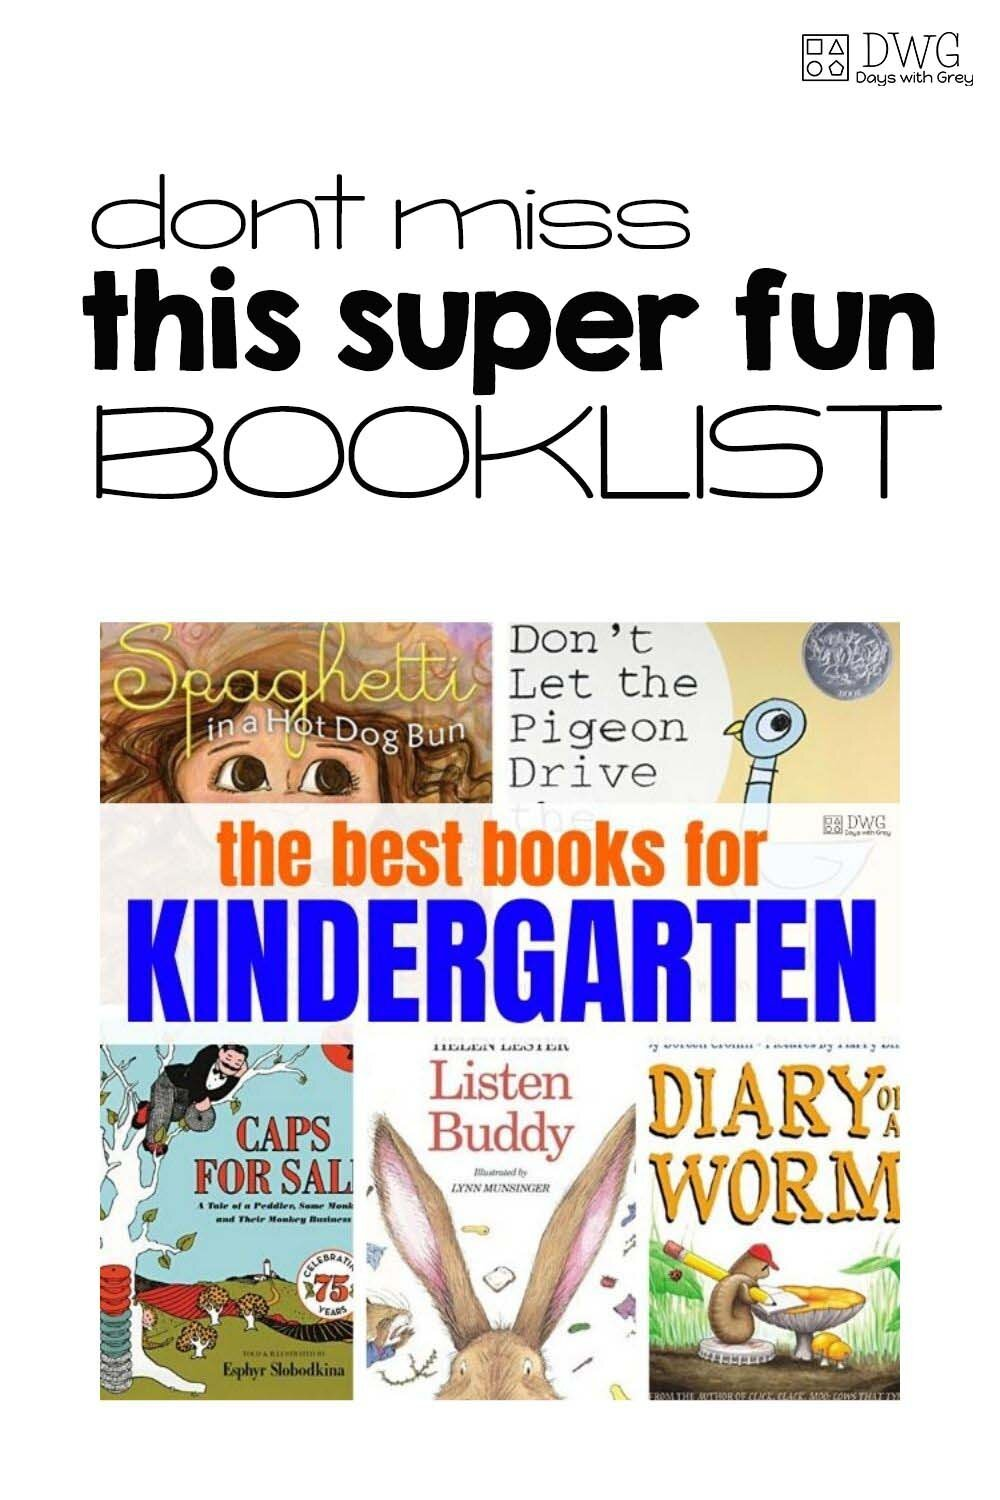 the best books for Kindergarten